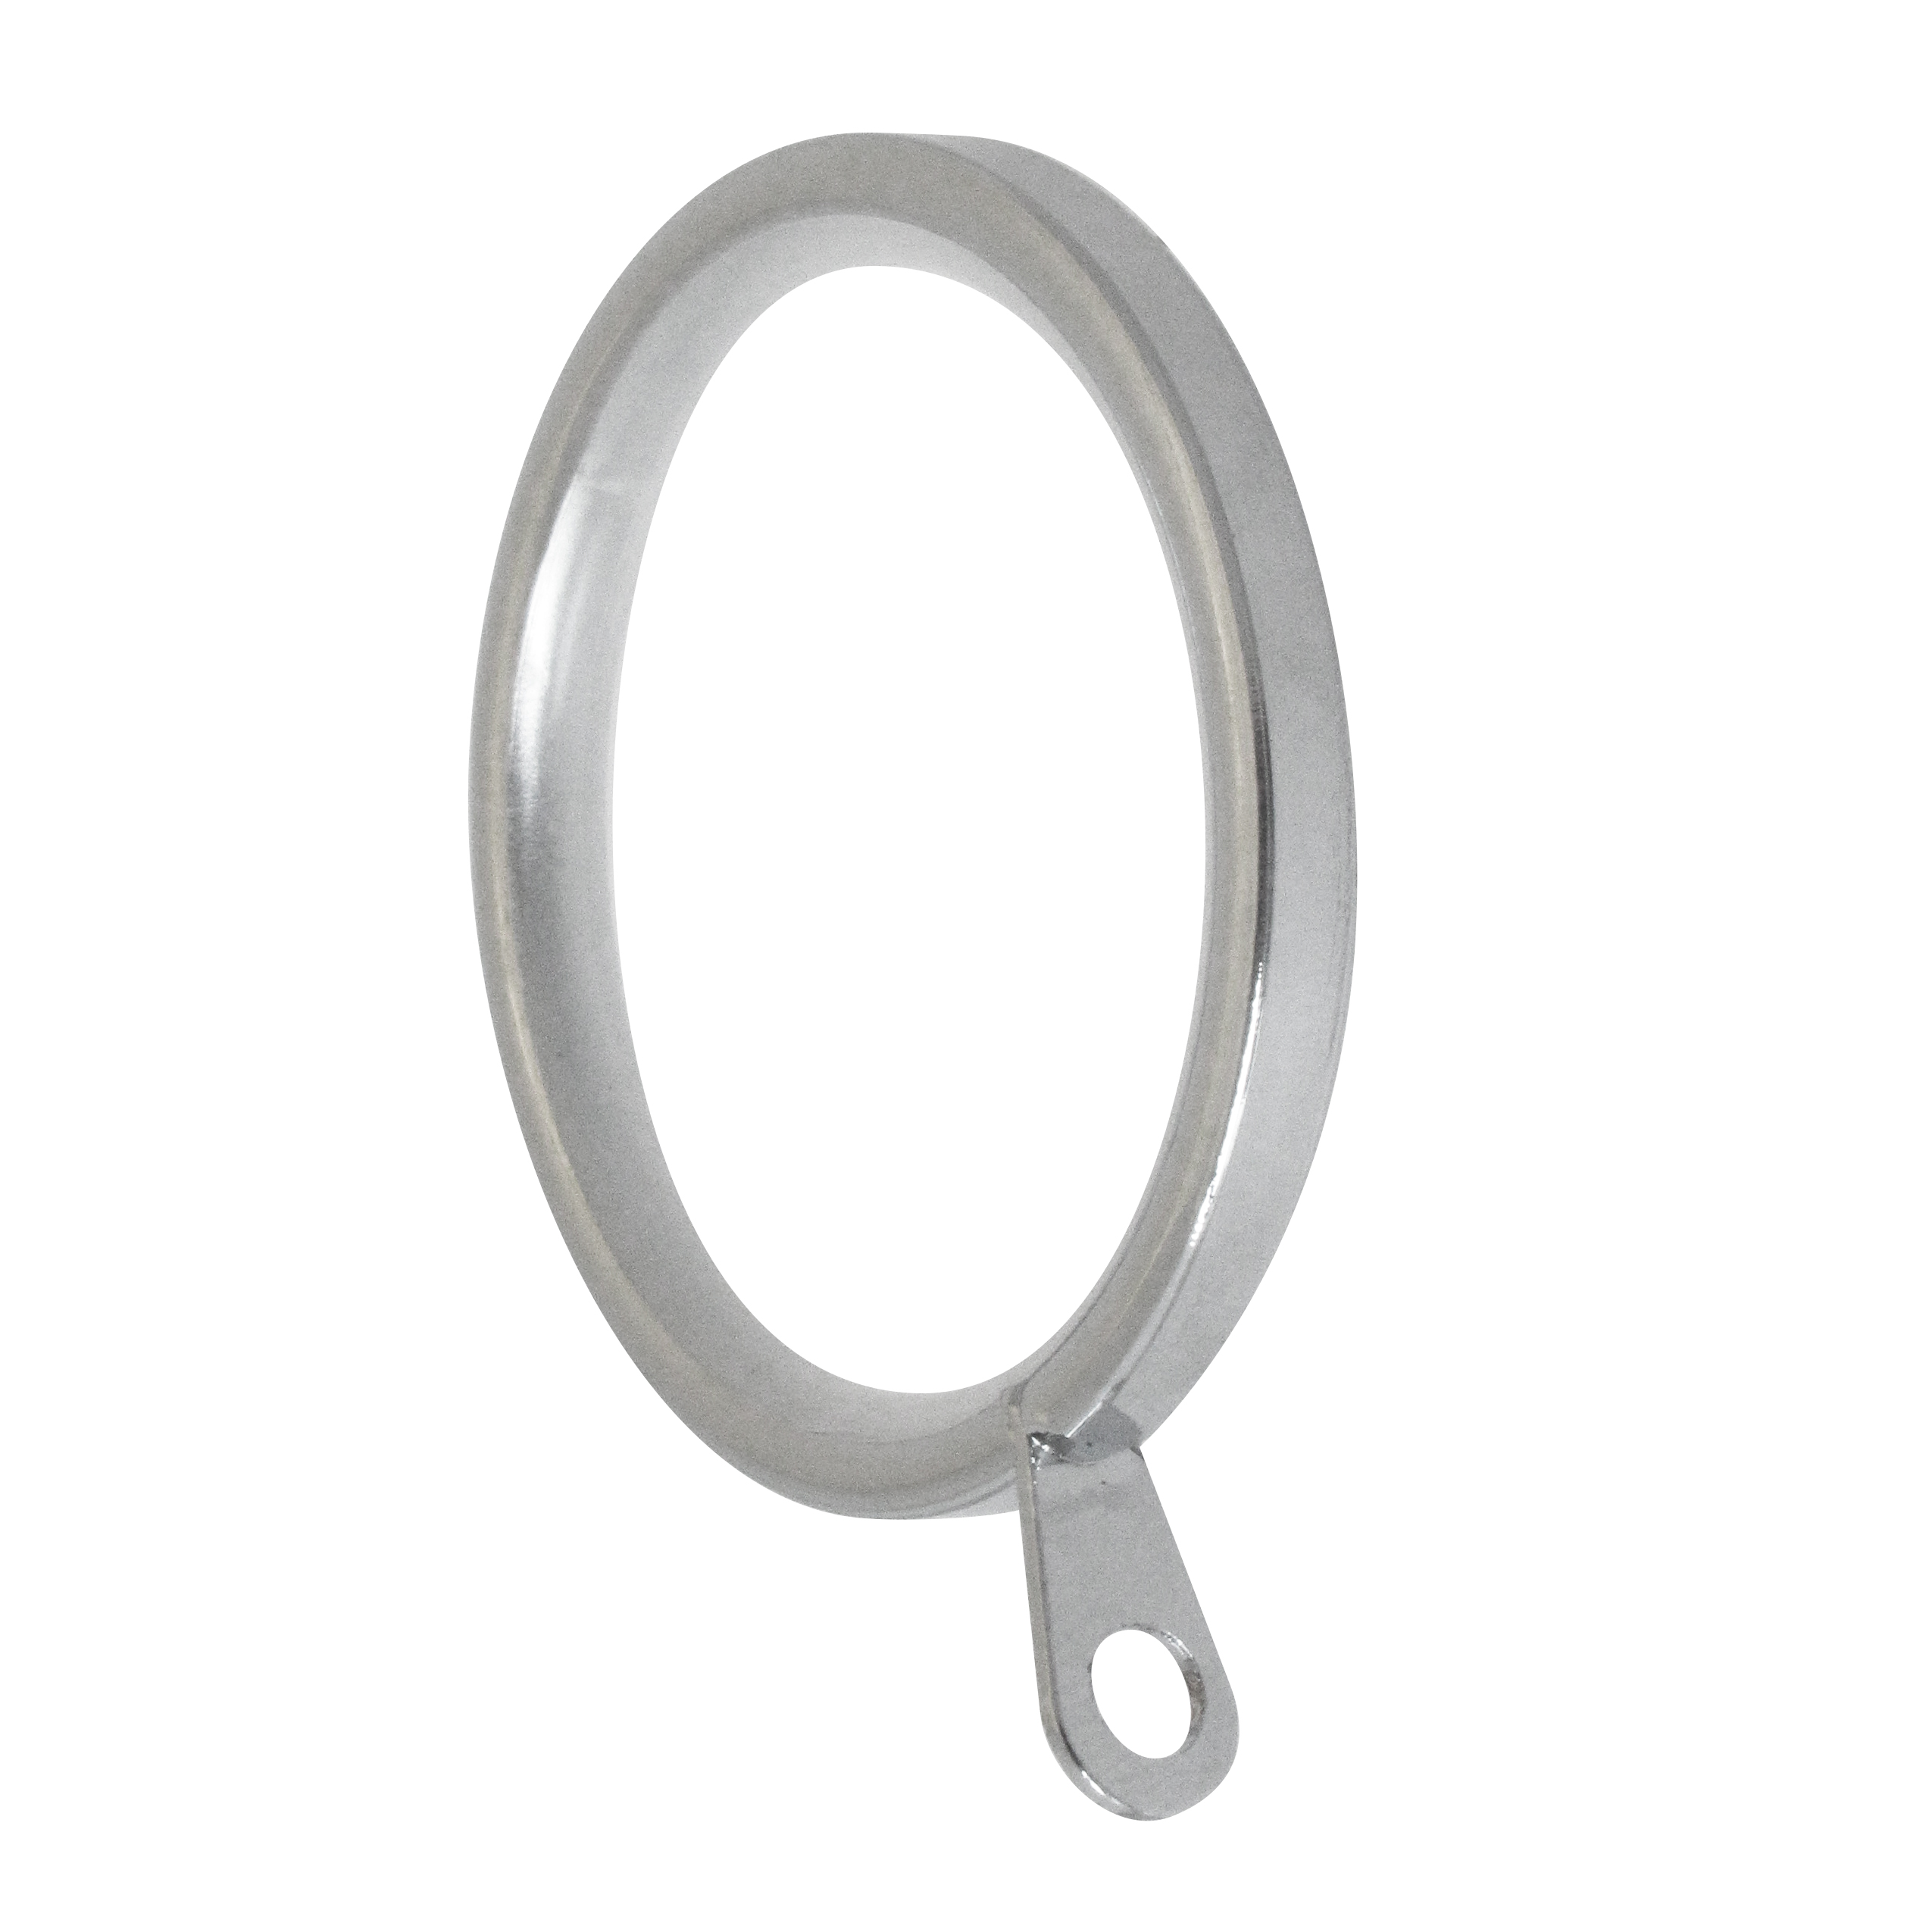 Swish Soho 28mm Curtain Rings (pack of 12)